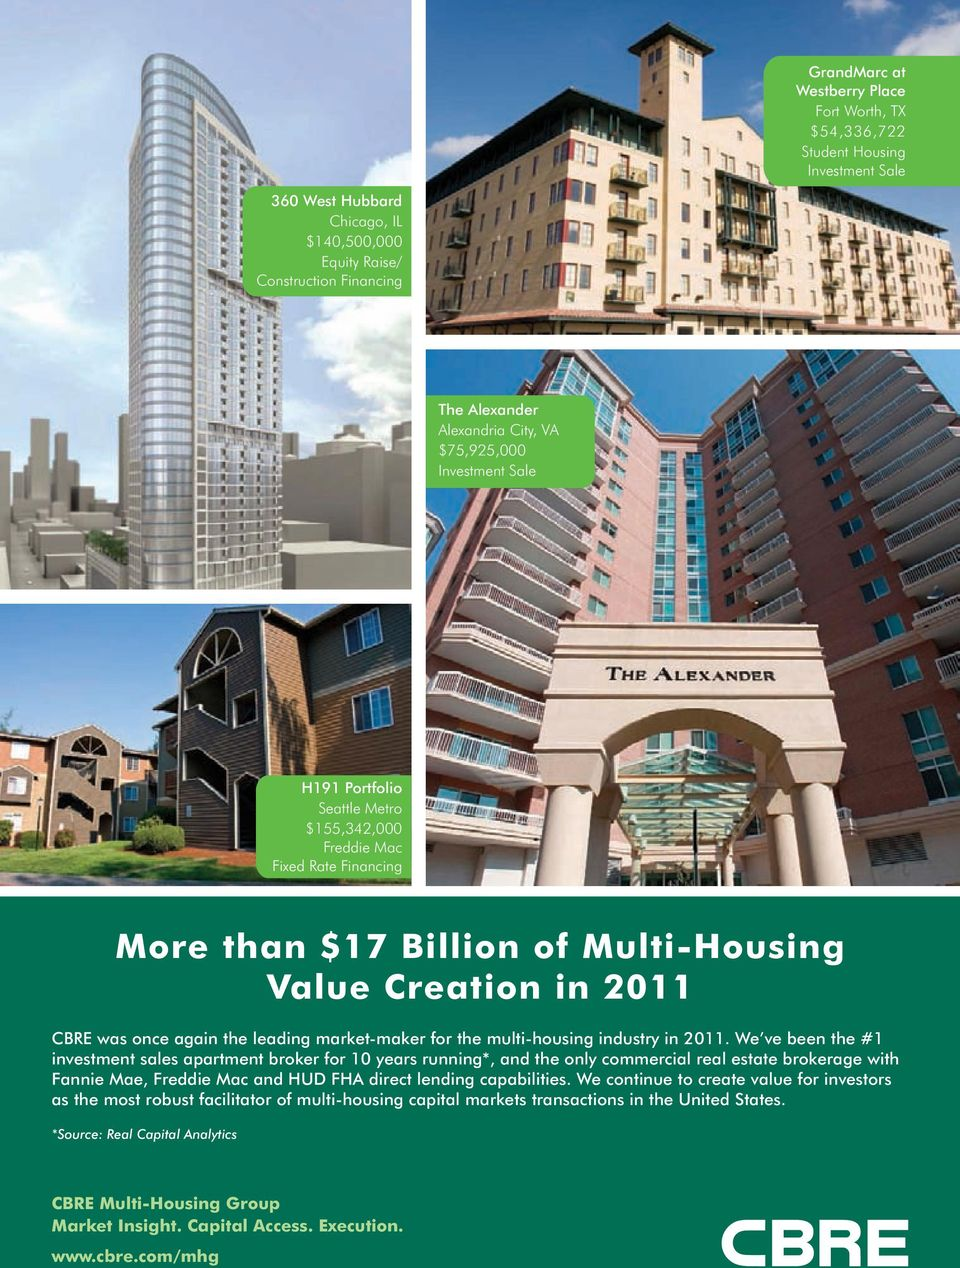 market-maker for the multi-housing industry in 2011.